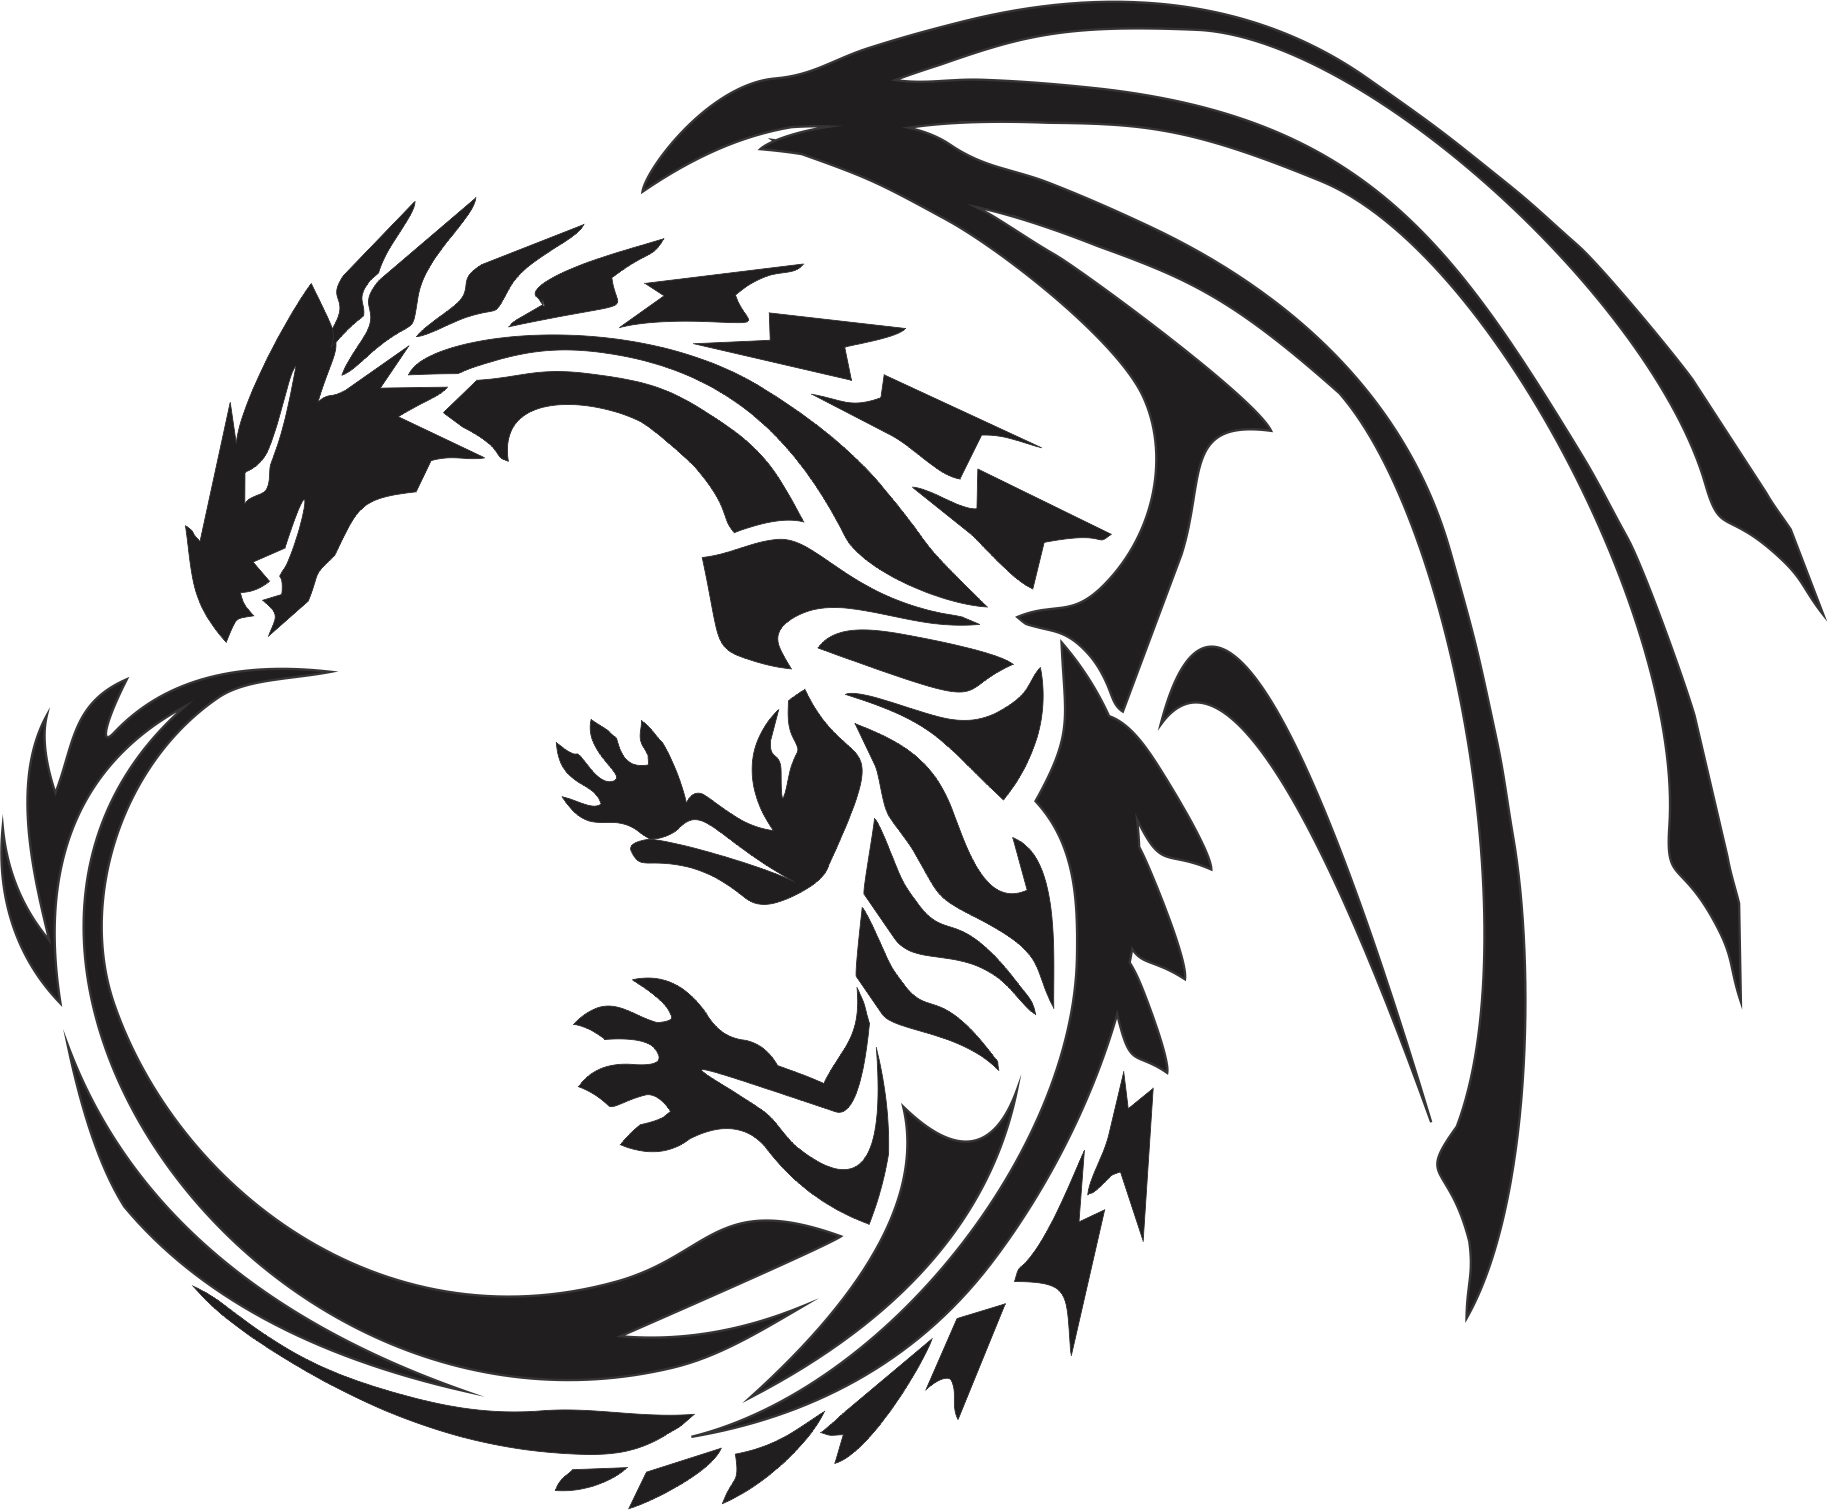 Naga drawing gambar. Dragon png images free